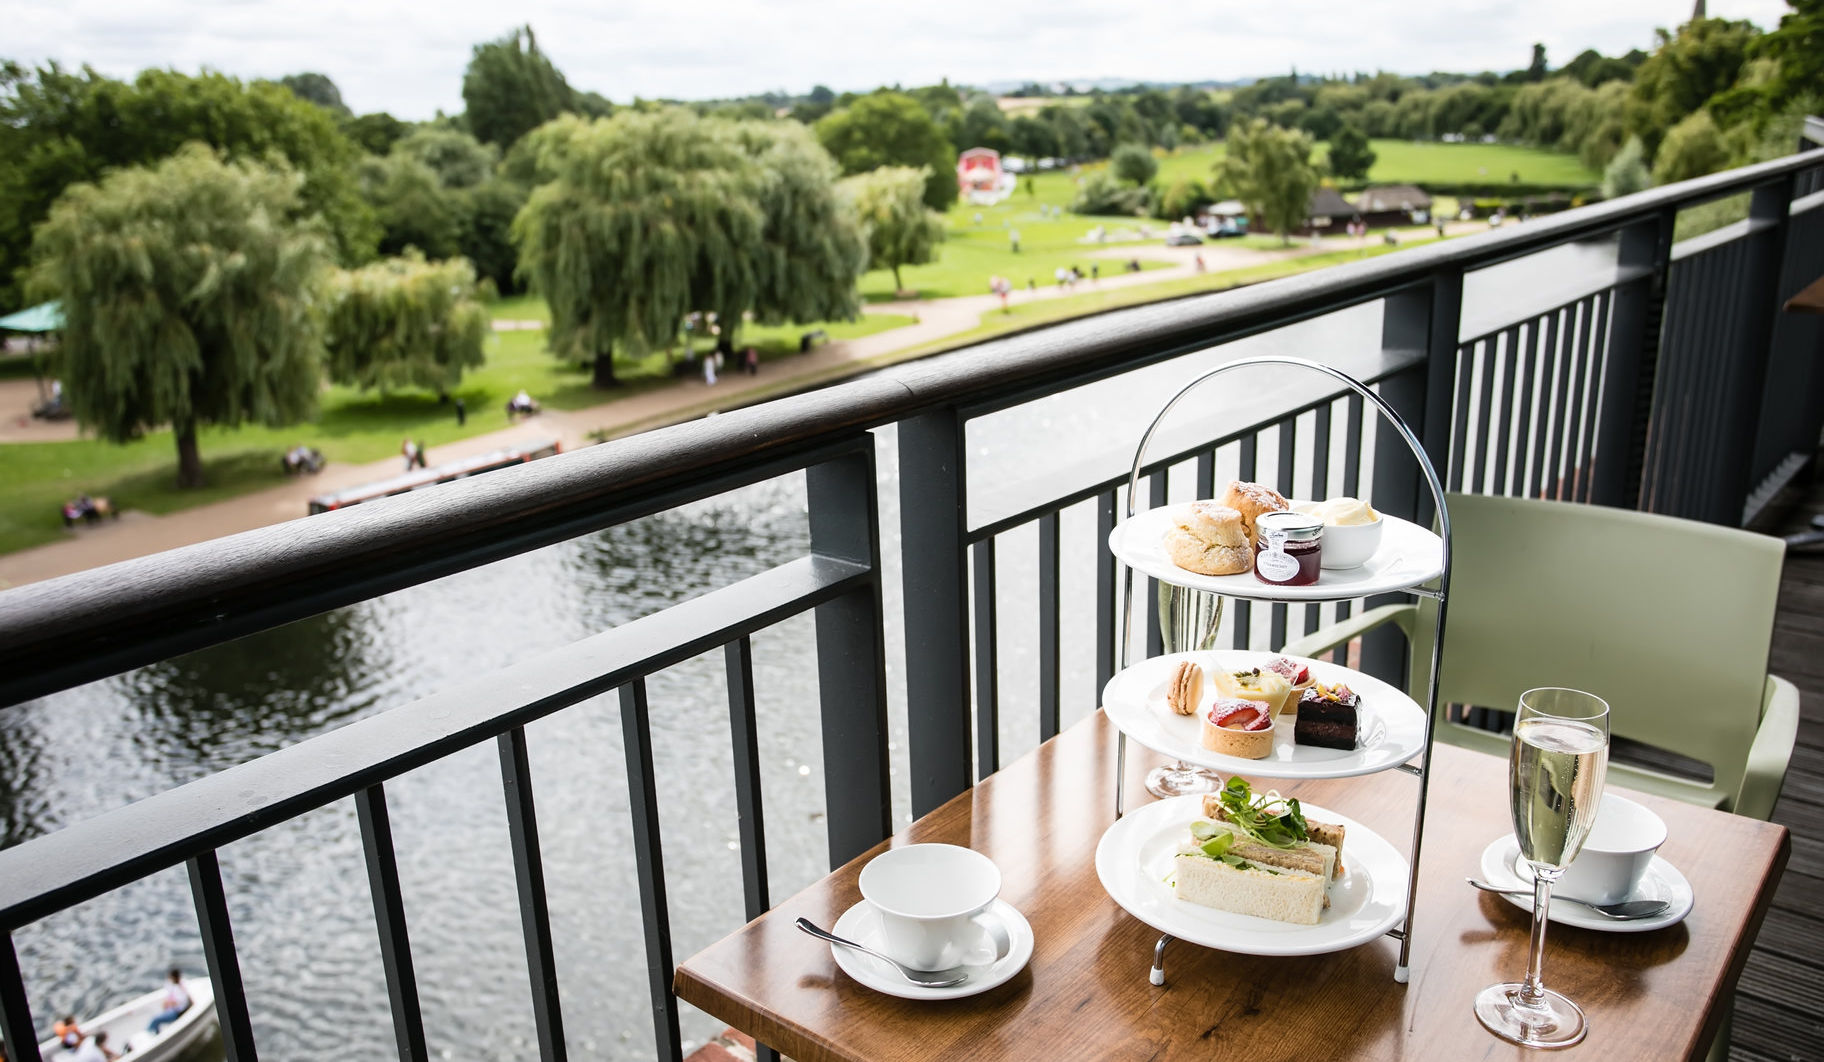 High tea in the Rooftop Restaurant by the River Avon